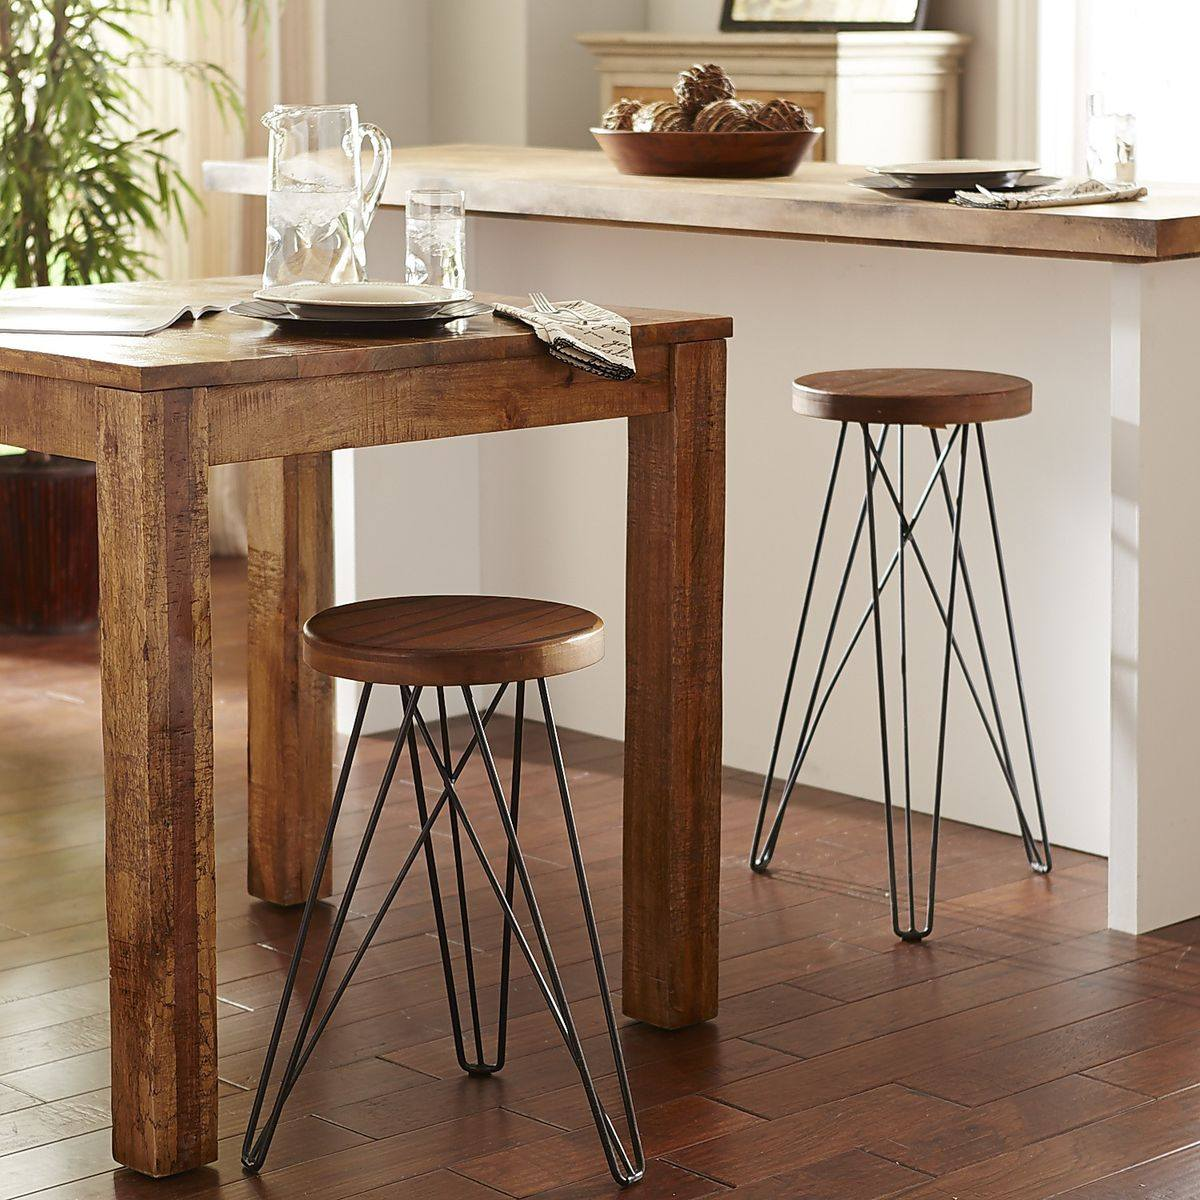 Cool Furniture Finds Cheers To These Seven Budget Friendly Bar Gmtry Best Dining Table And Chair Ideas Images Gmtryco